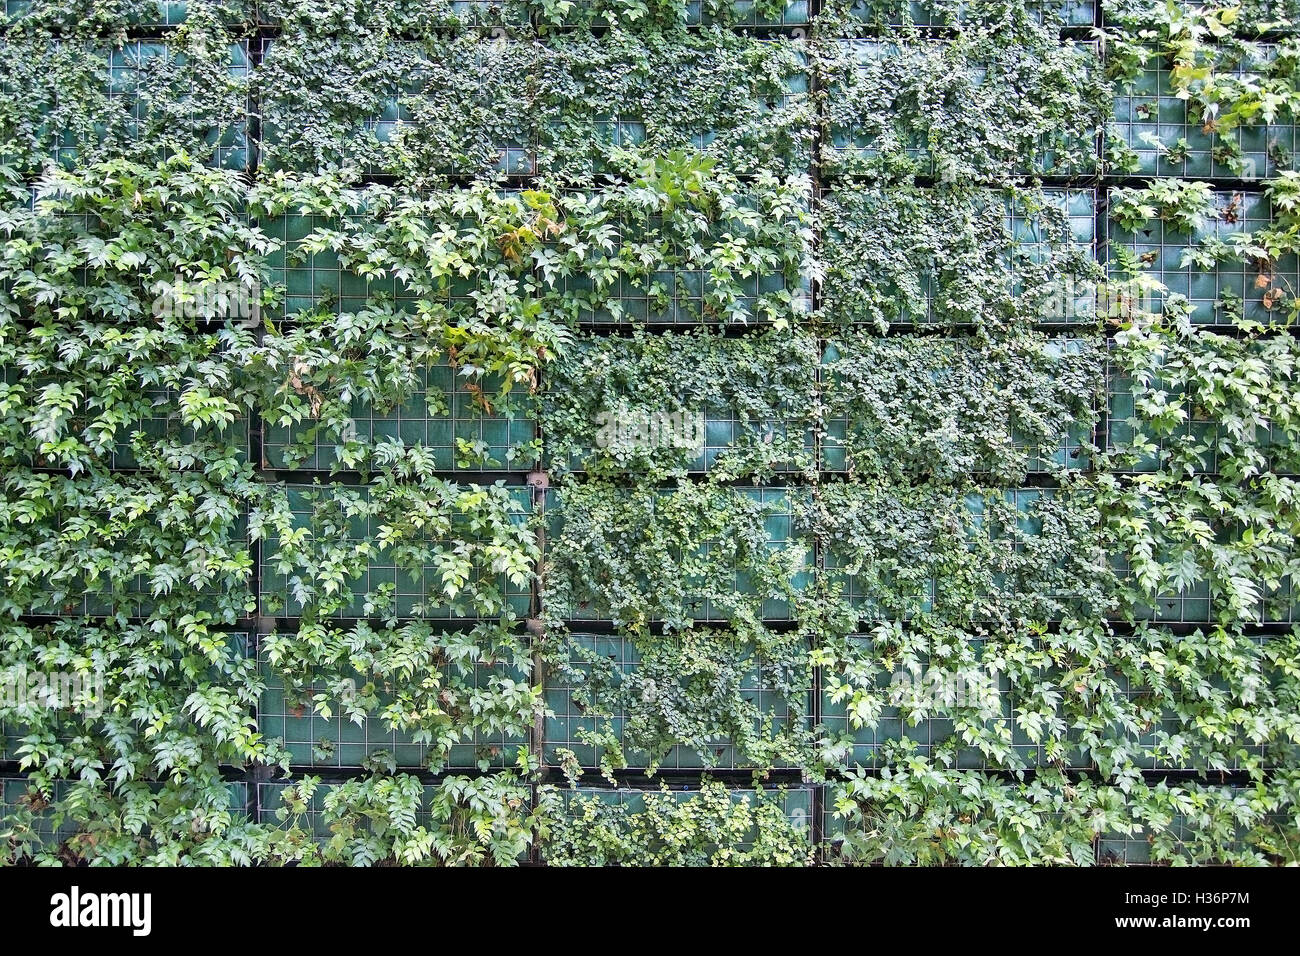 Green Wall Vertical Garden Grid With New Fresh Plants